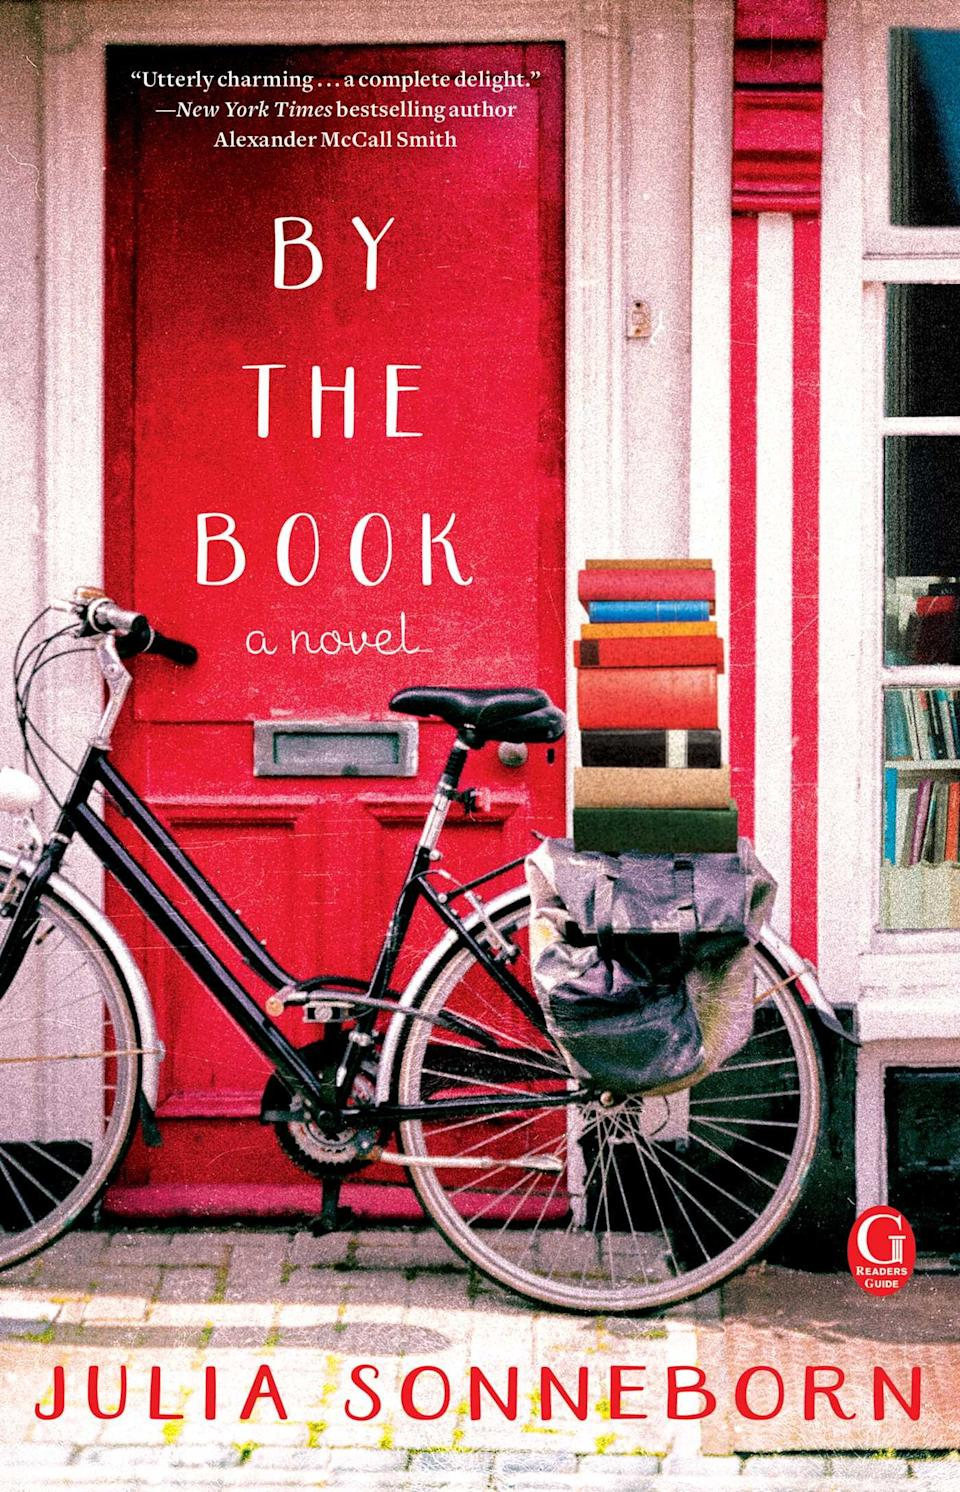 By the Book by Julia Sonneborn (Photo via Amazon)